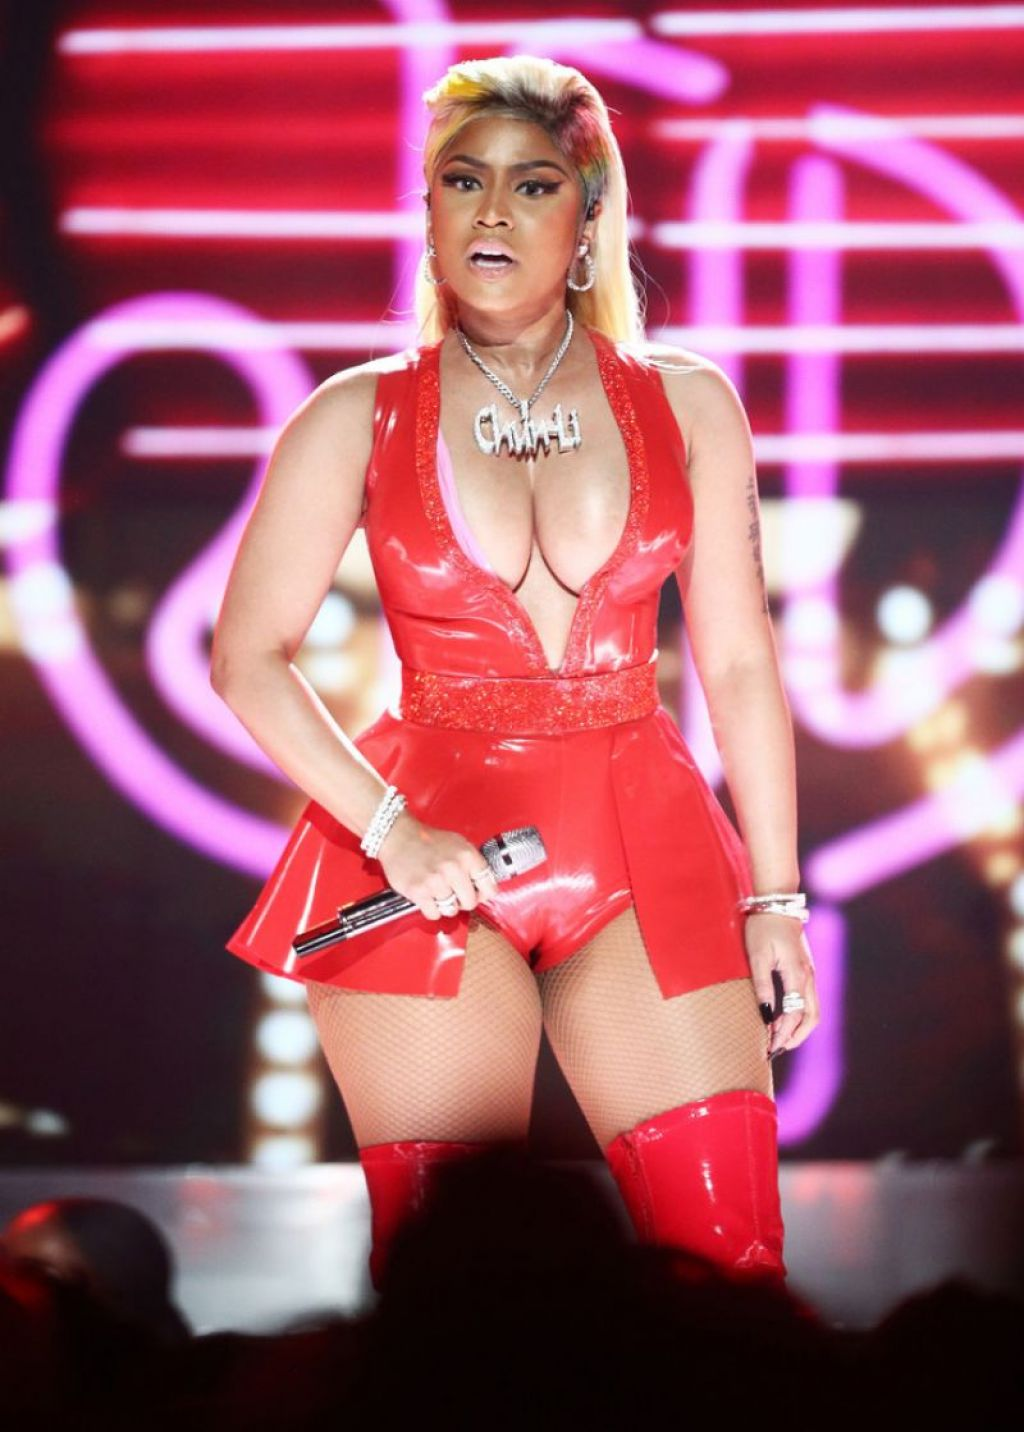 Nicki minaj performance on bet awards william hill live betting